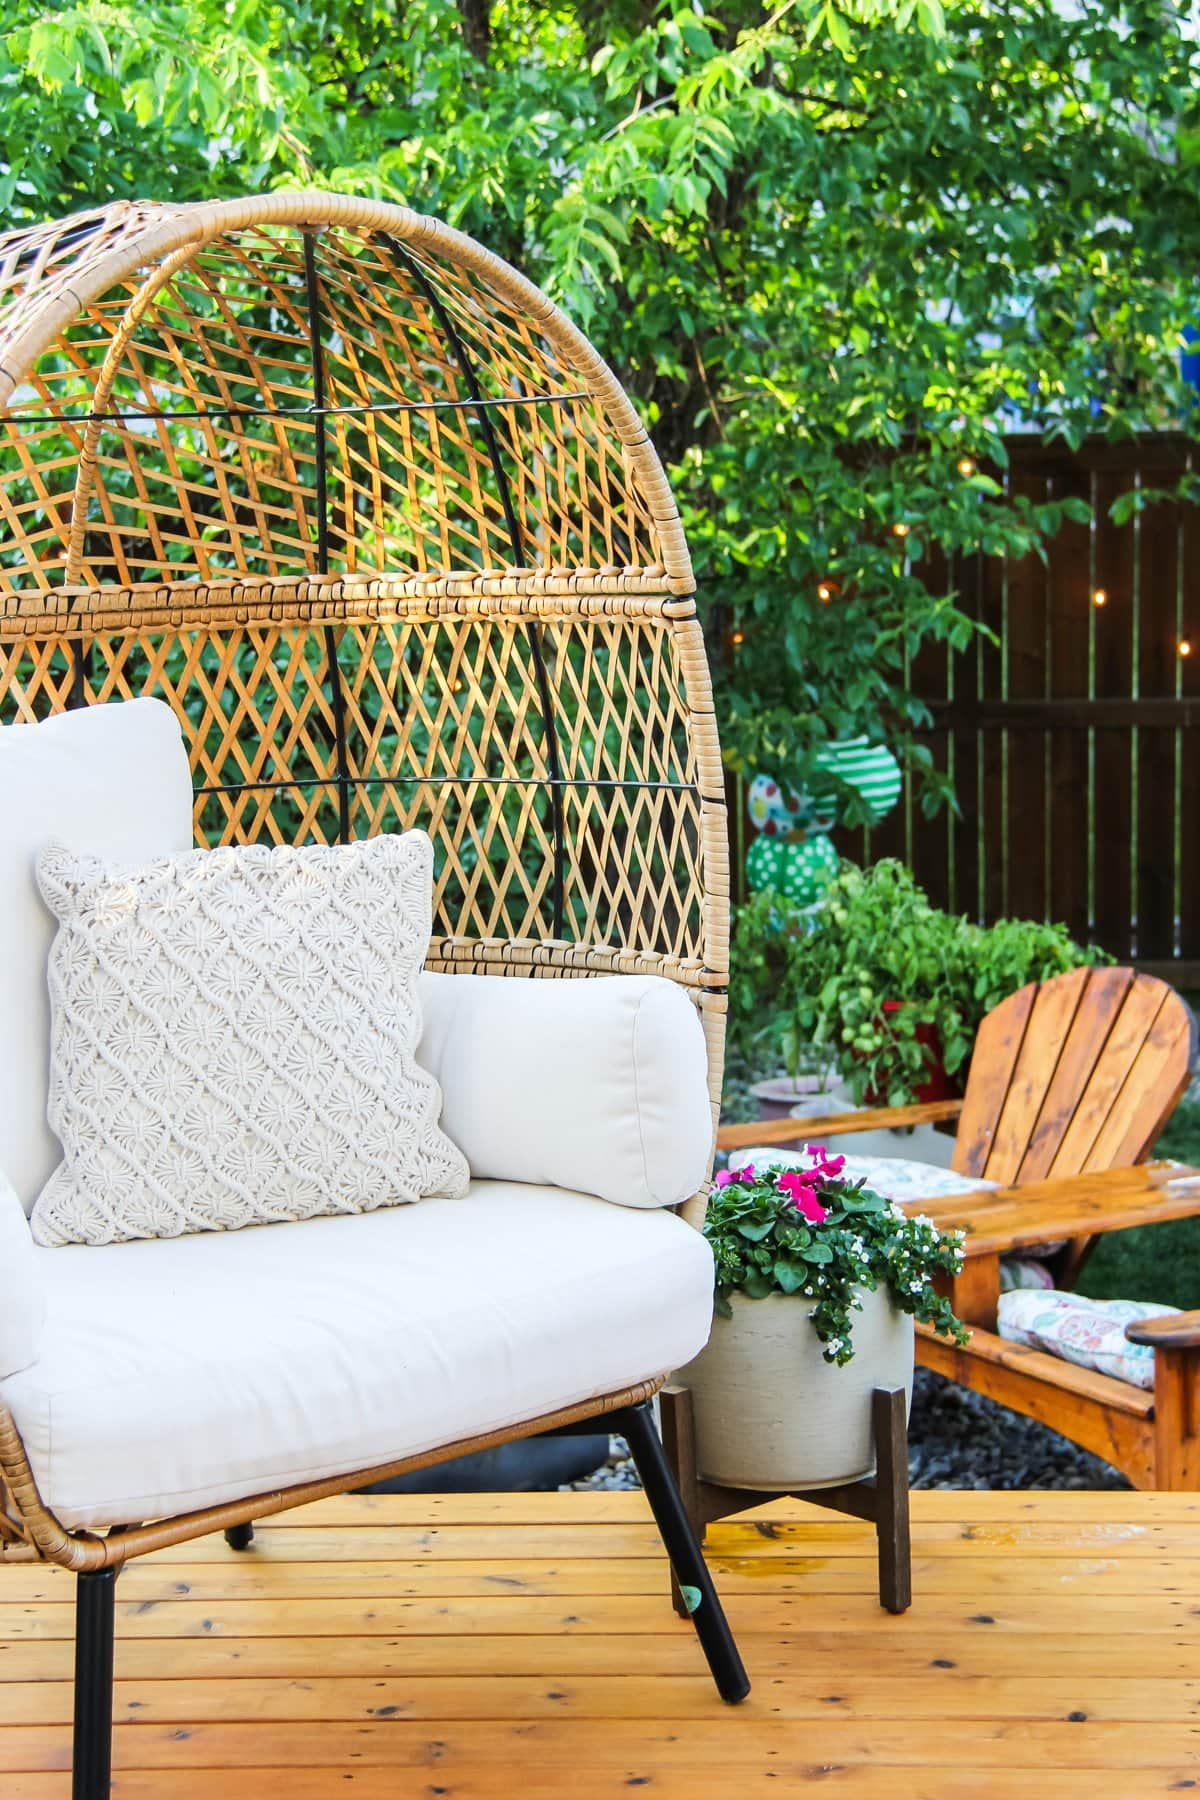 a wicker egg chair on a summer deck. in the background are trees, adirondack chairs and flowers